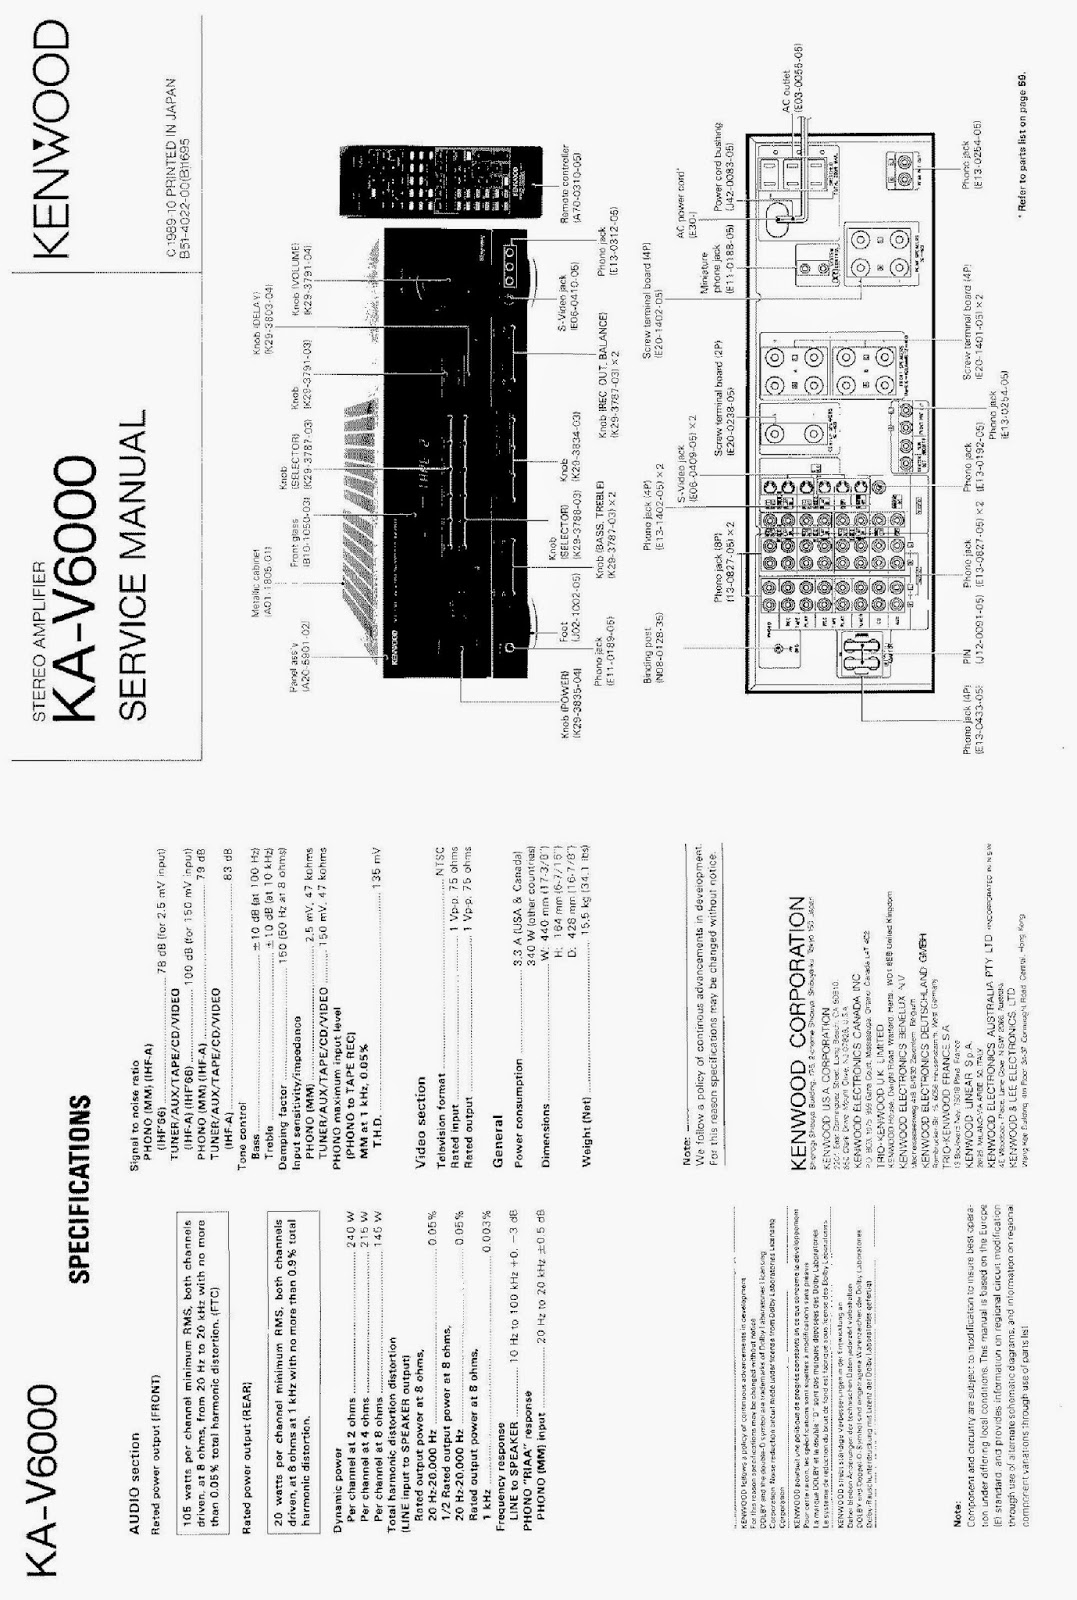 KENWOOD VR-6050 MANUAL